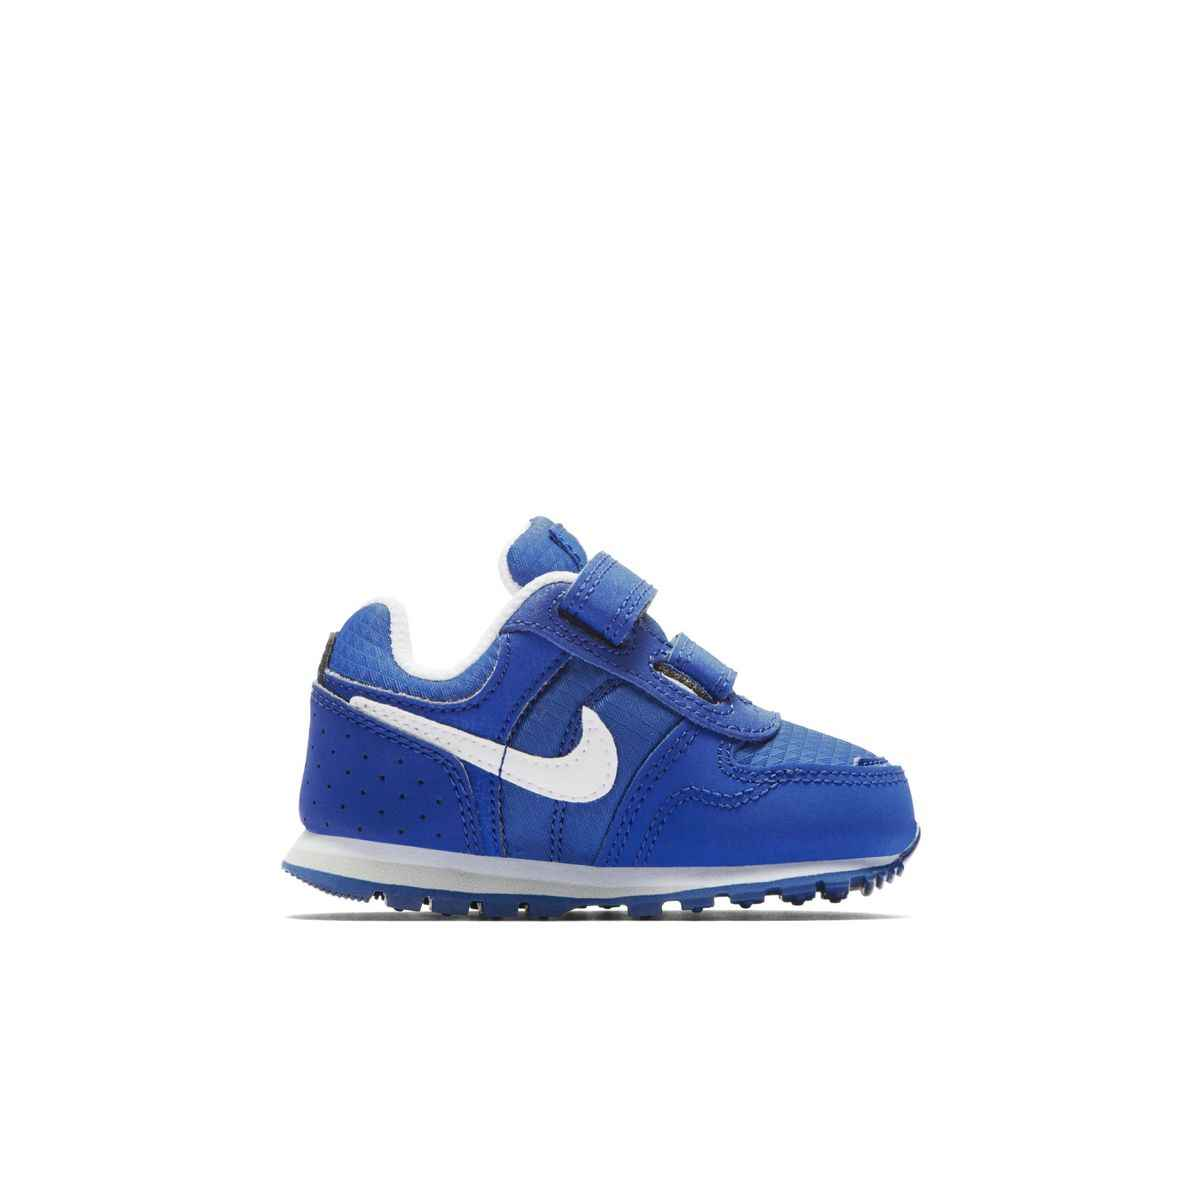 f5c17fcc6905f ... Nike Kids Official Nike MD Runner TDV Baby Motion Children s Shoes Blue  And White Breathable Sneakers ...